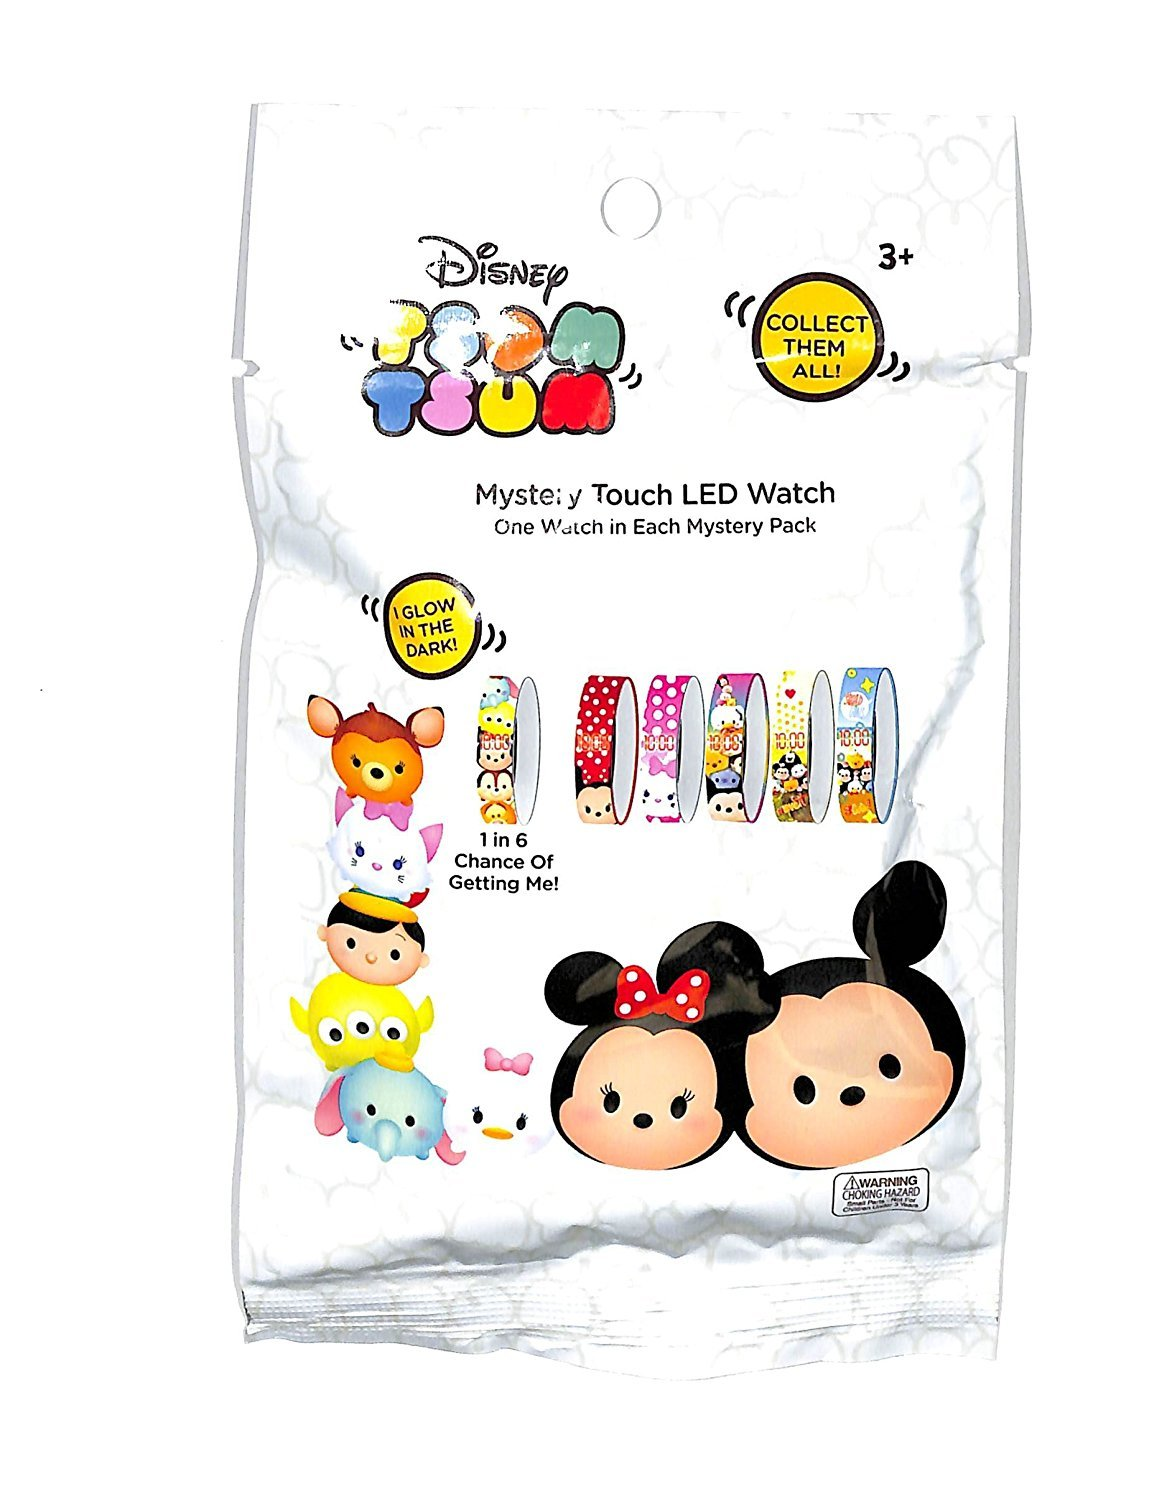 Disney Tsum Tsum Mystery Touch LED Watch 100 Blind Bags